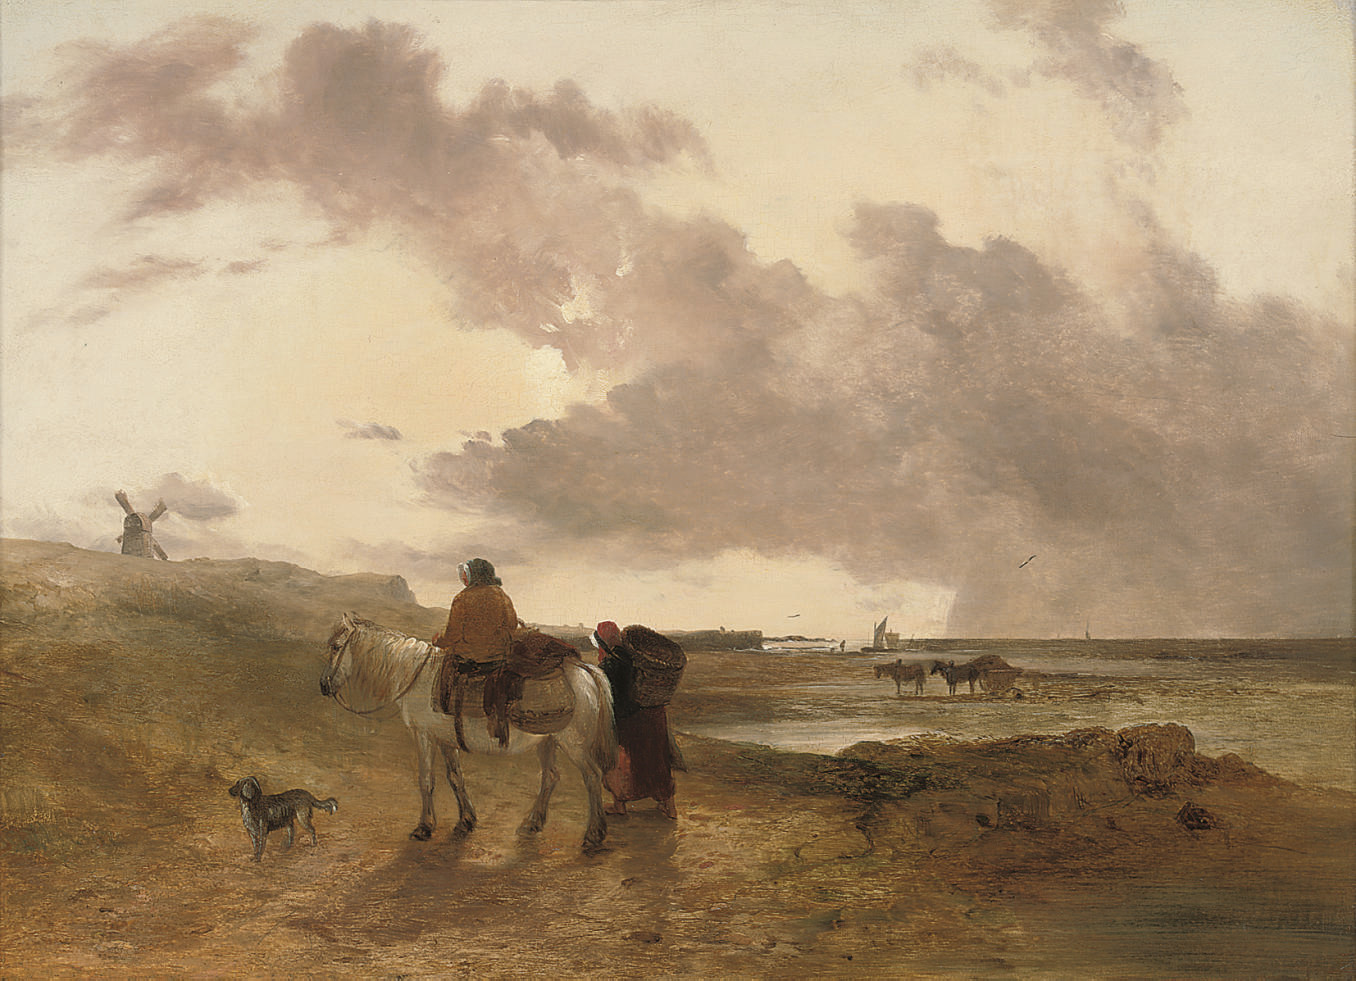 Figures and horses on a beach